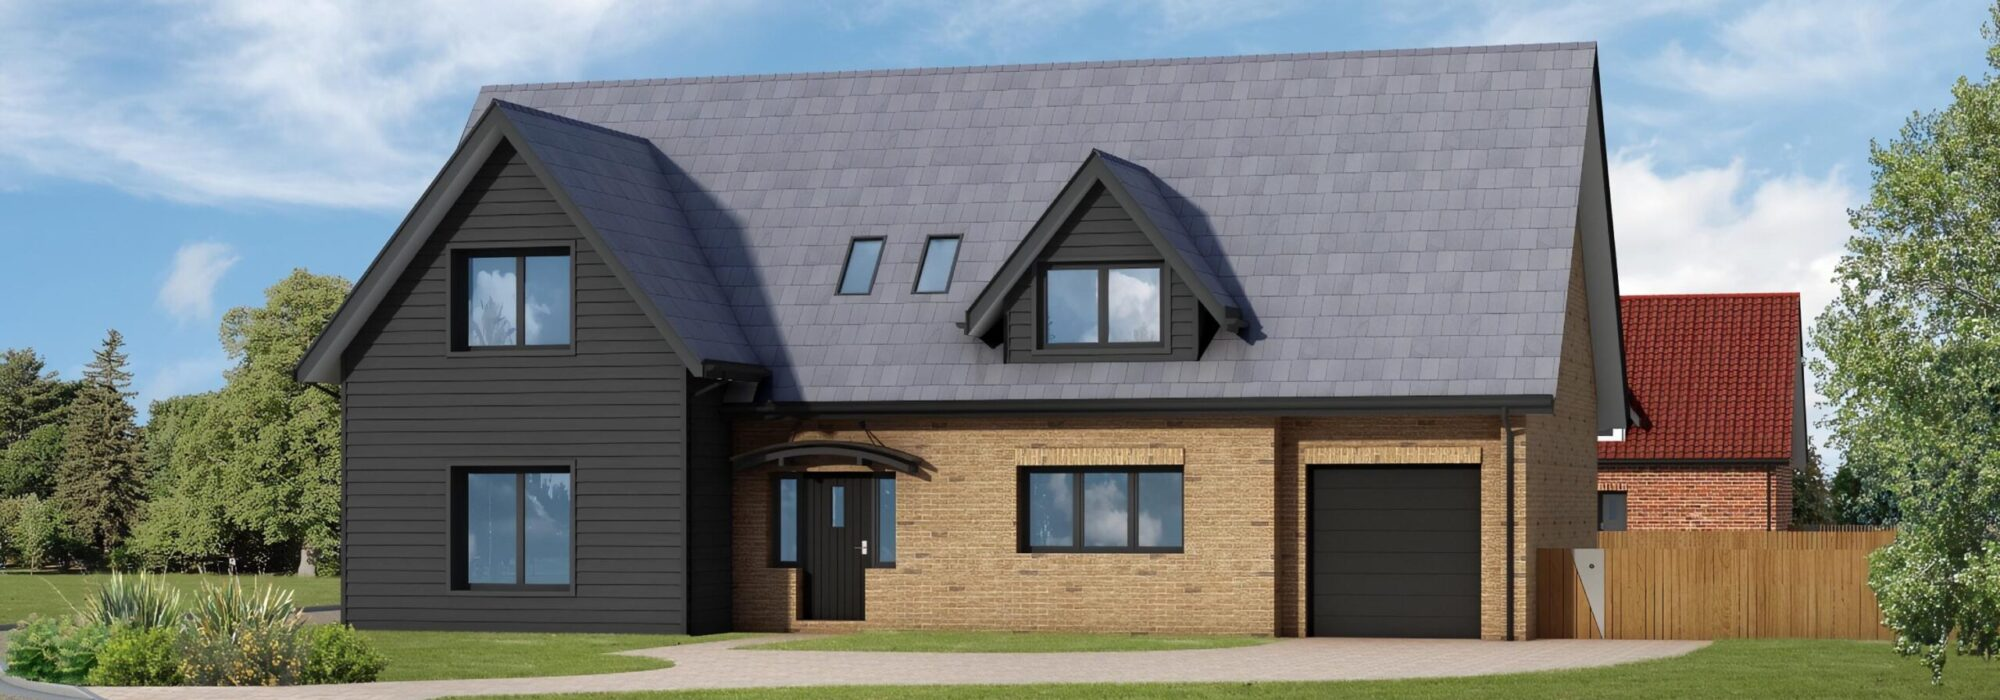 Render of property in Turnpike lane, Red Lodge